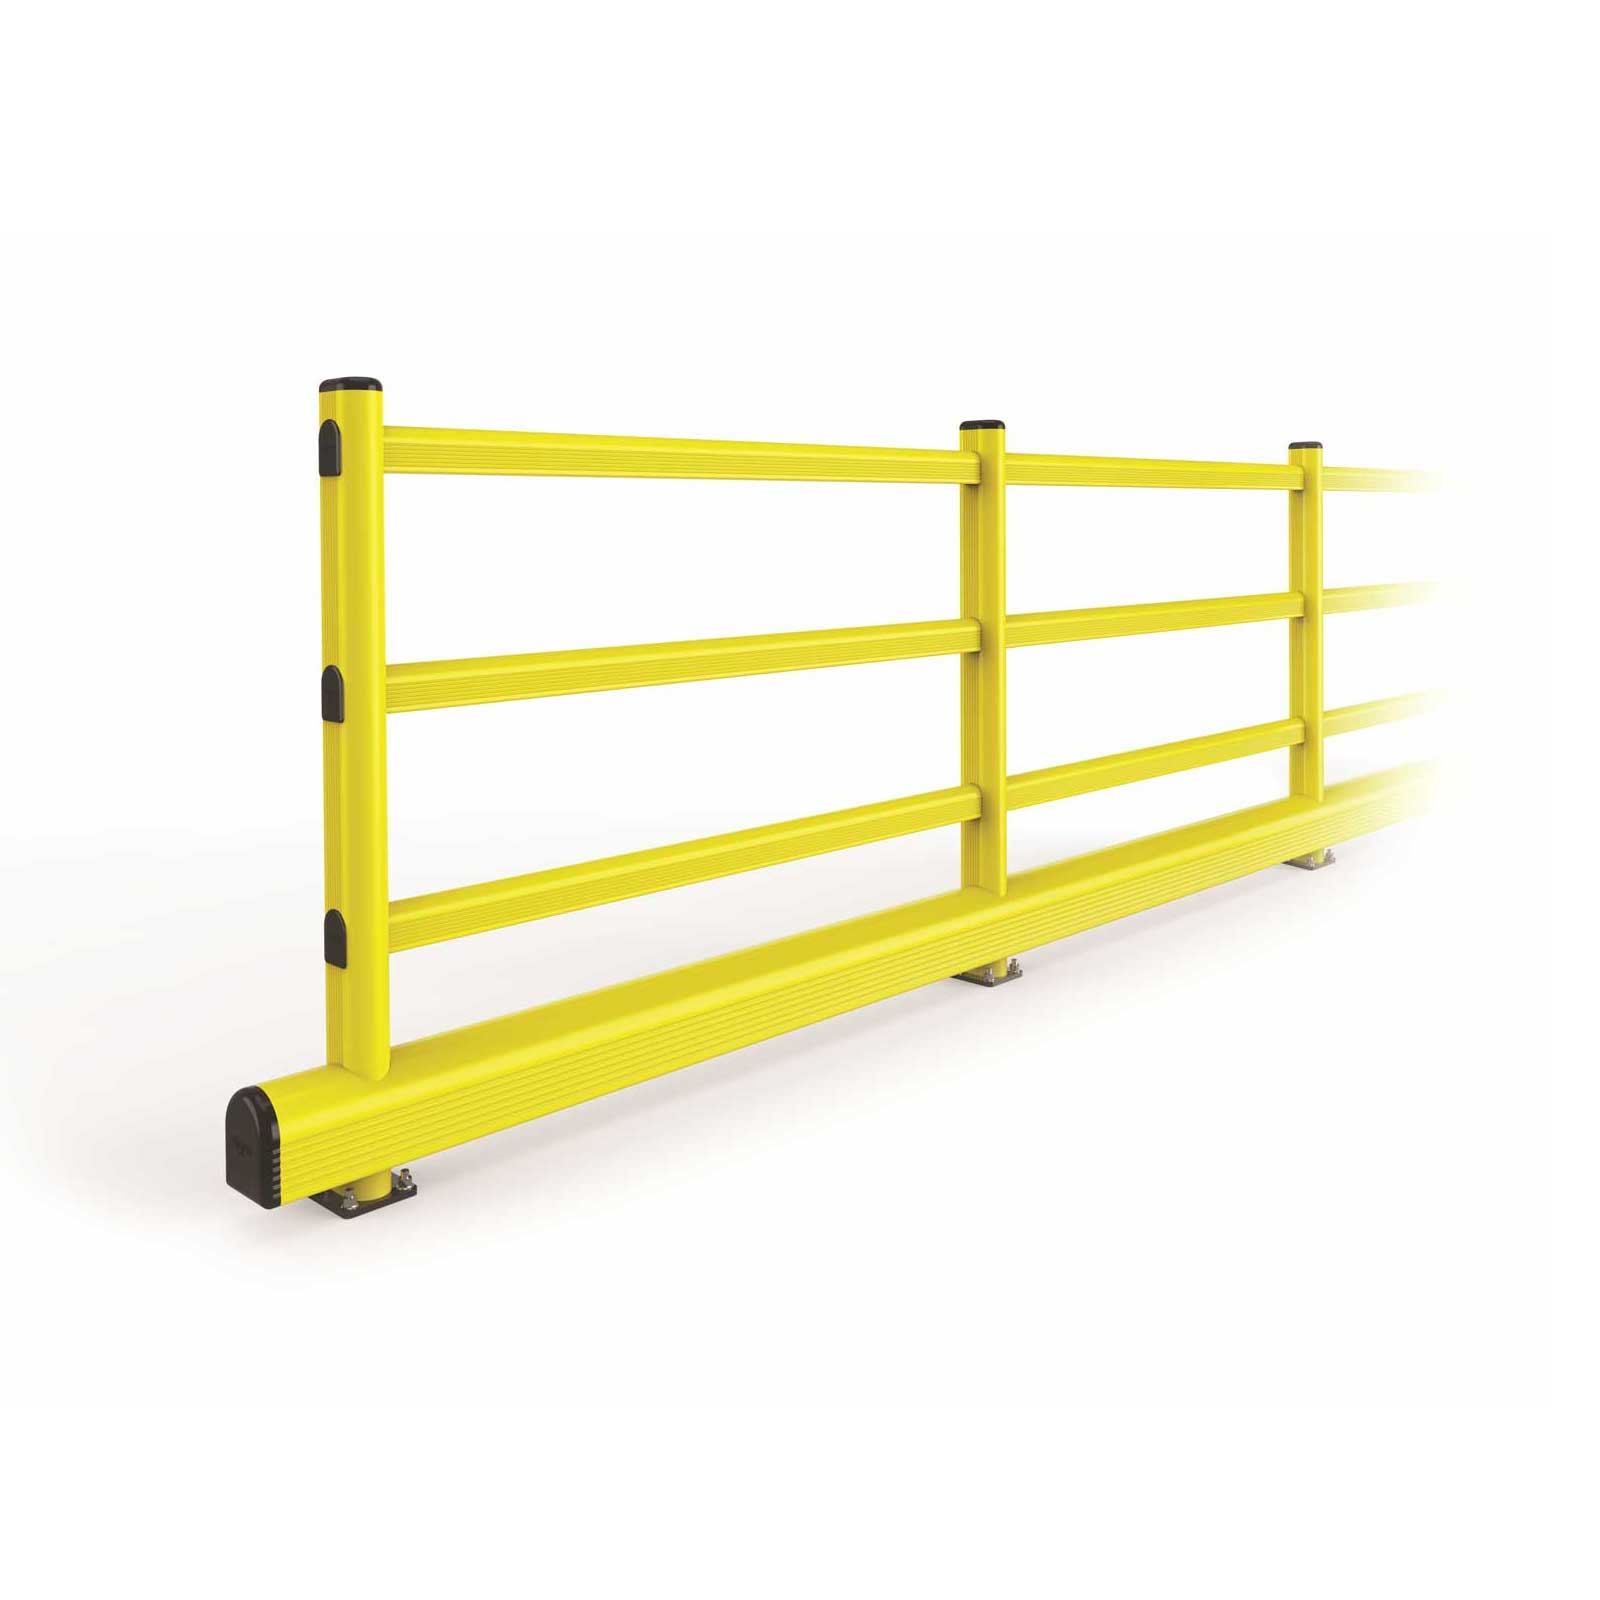 Ped-90-Reinforced Barriers